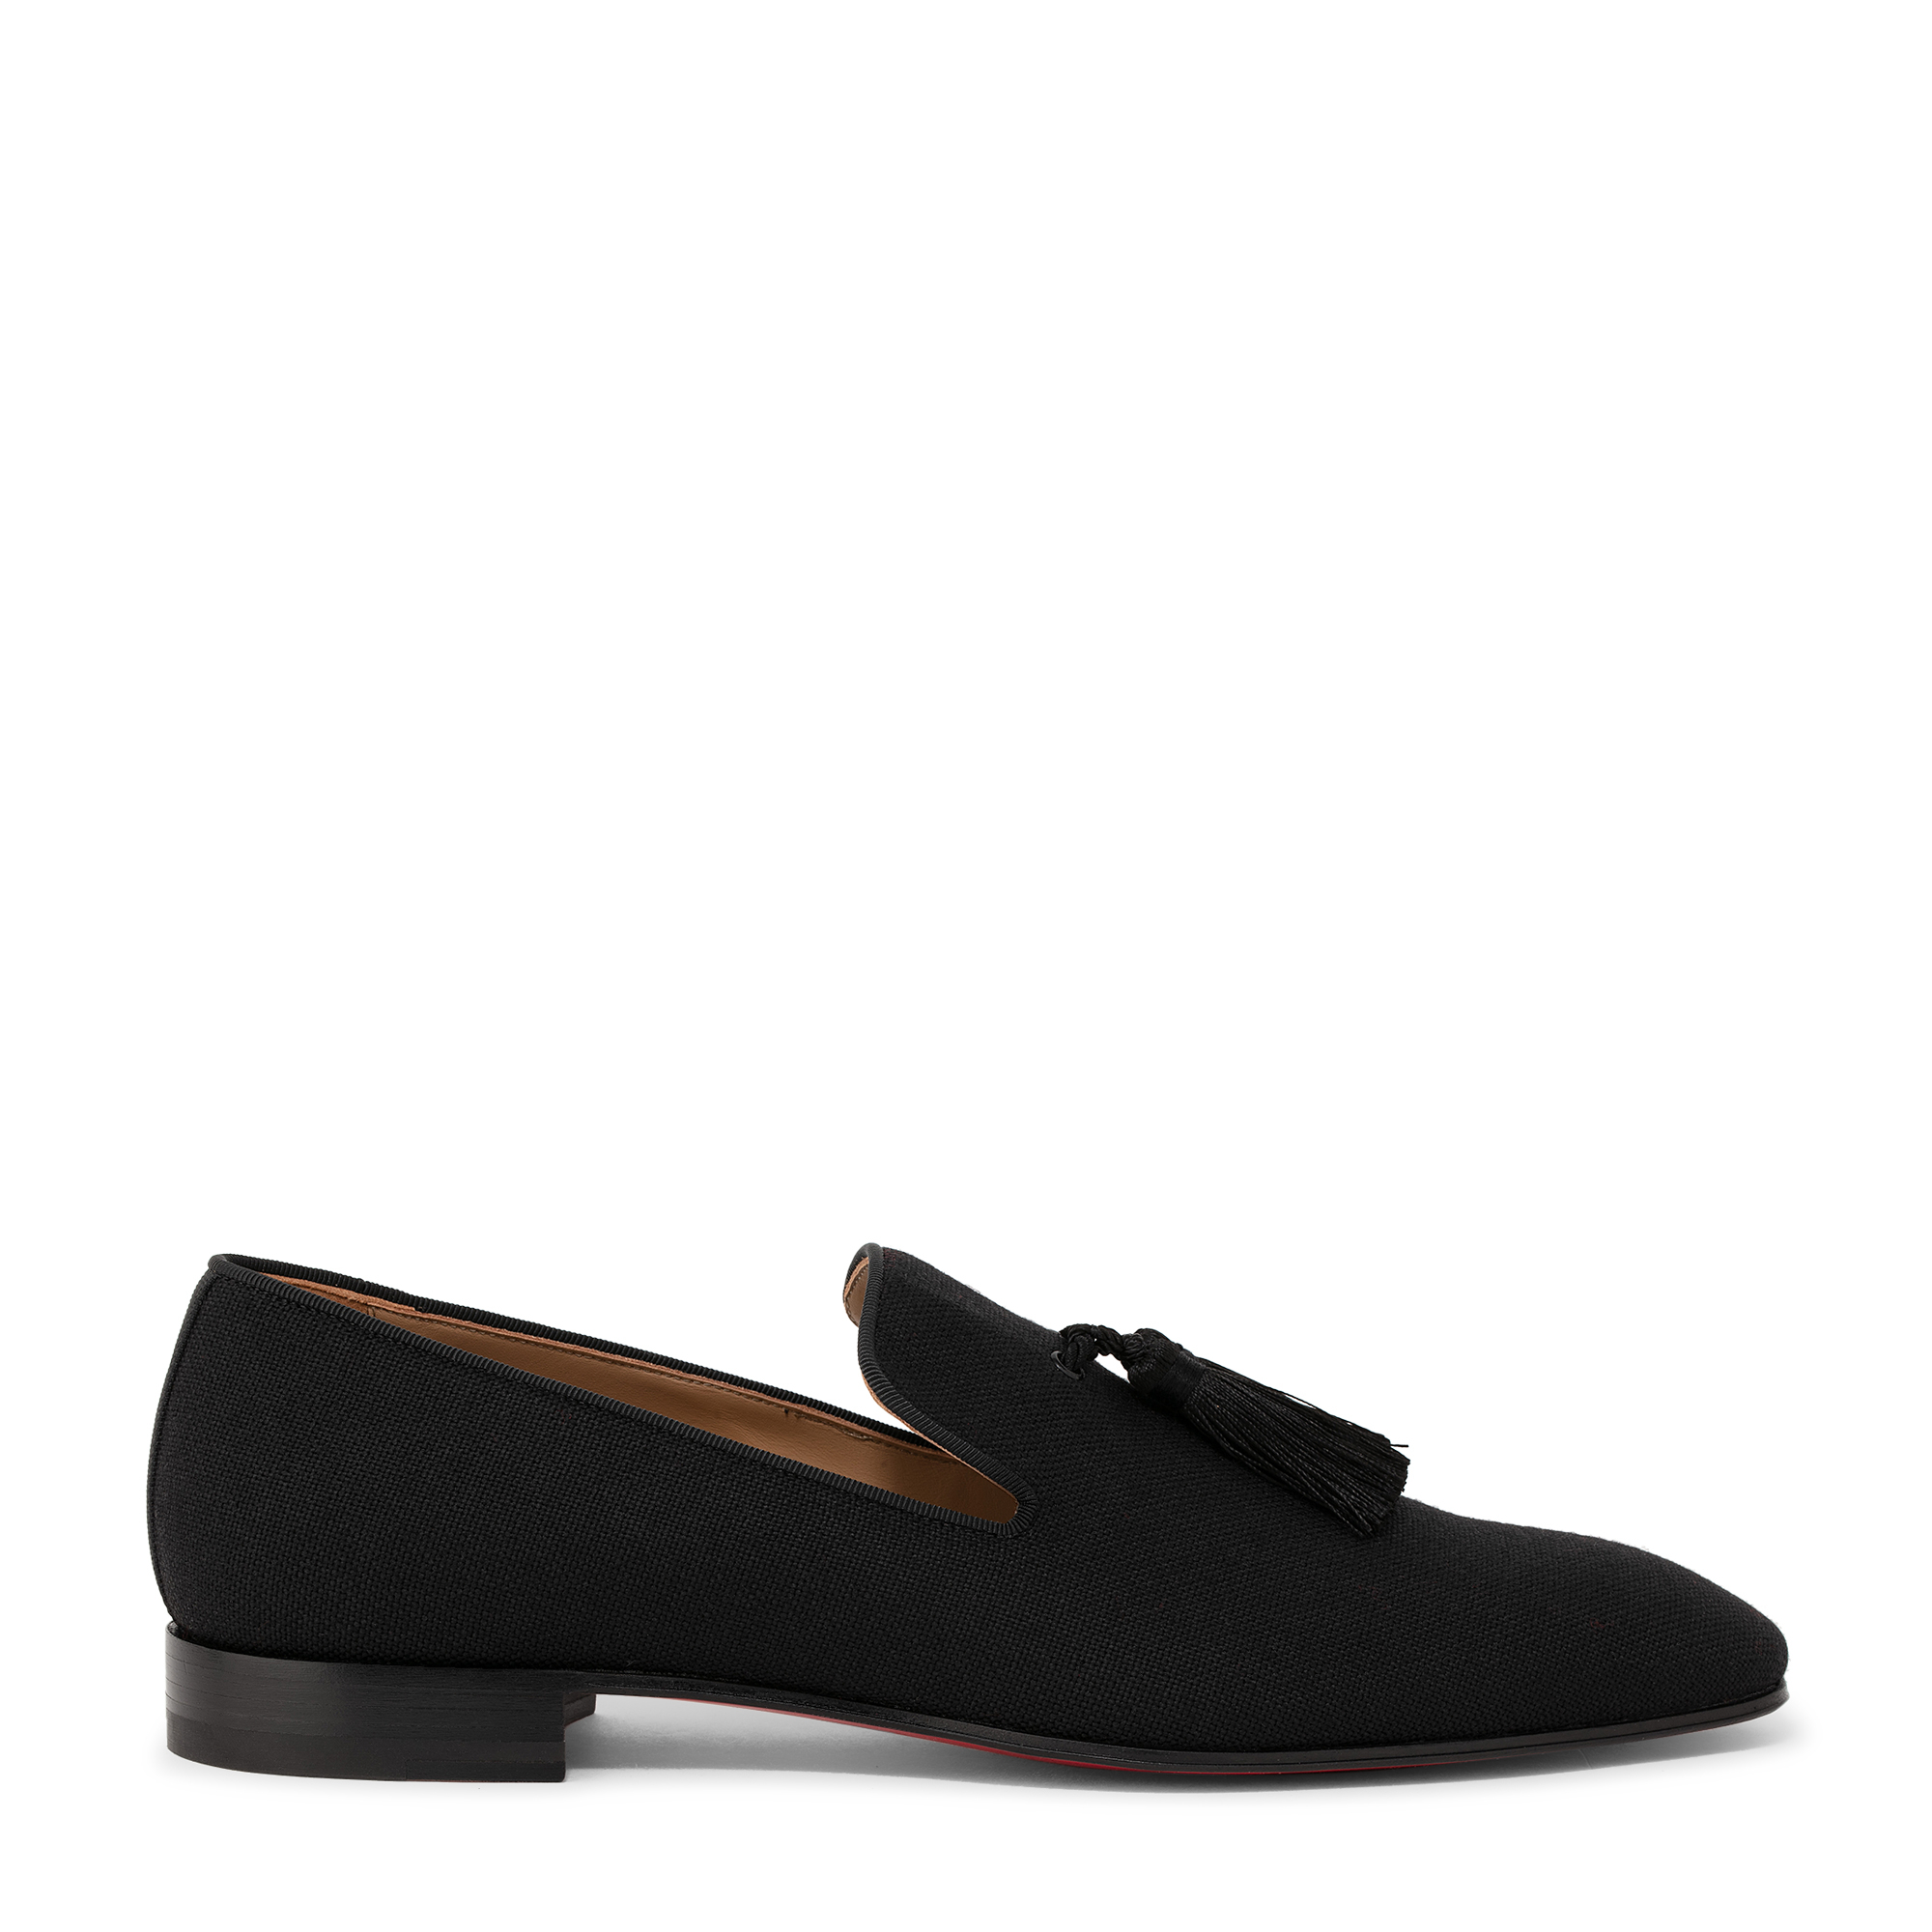 Officialito loafers